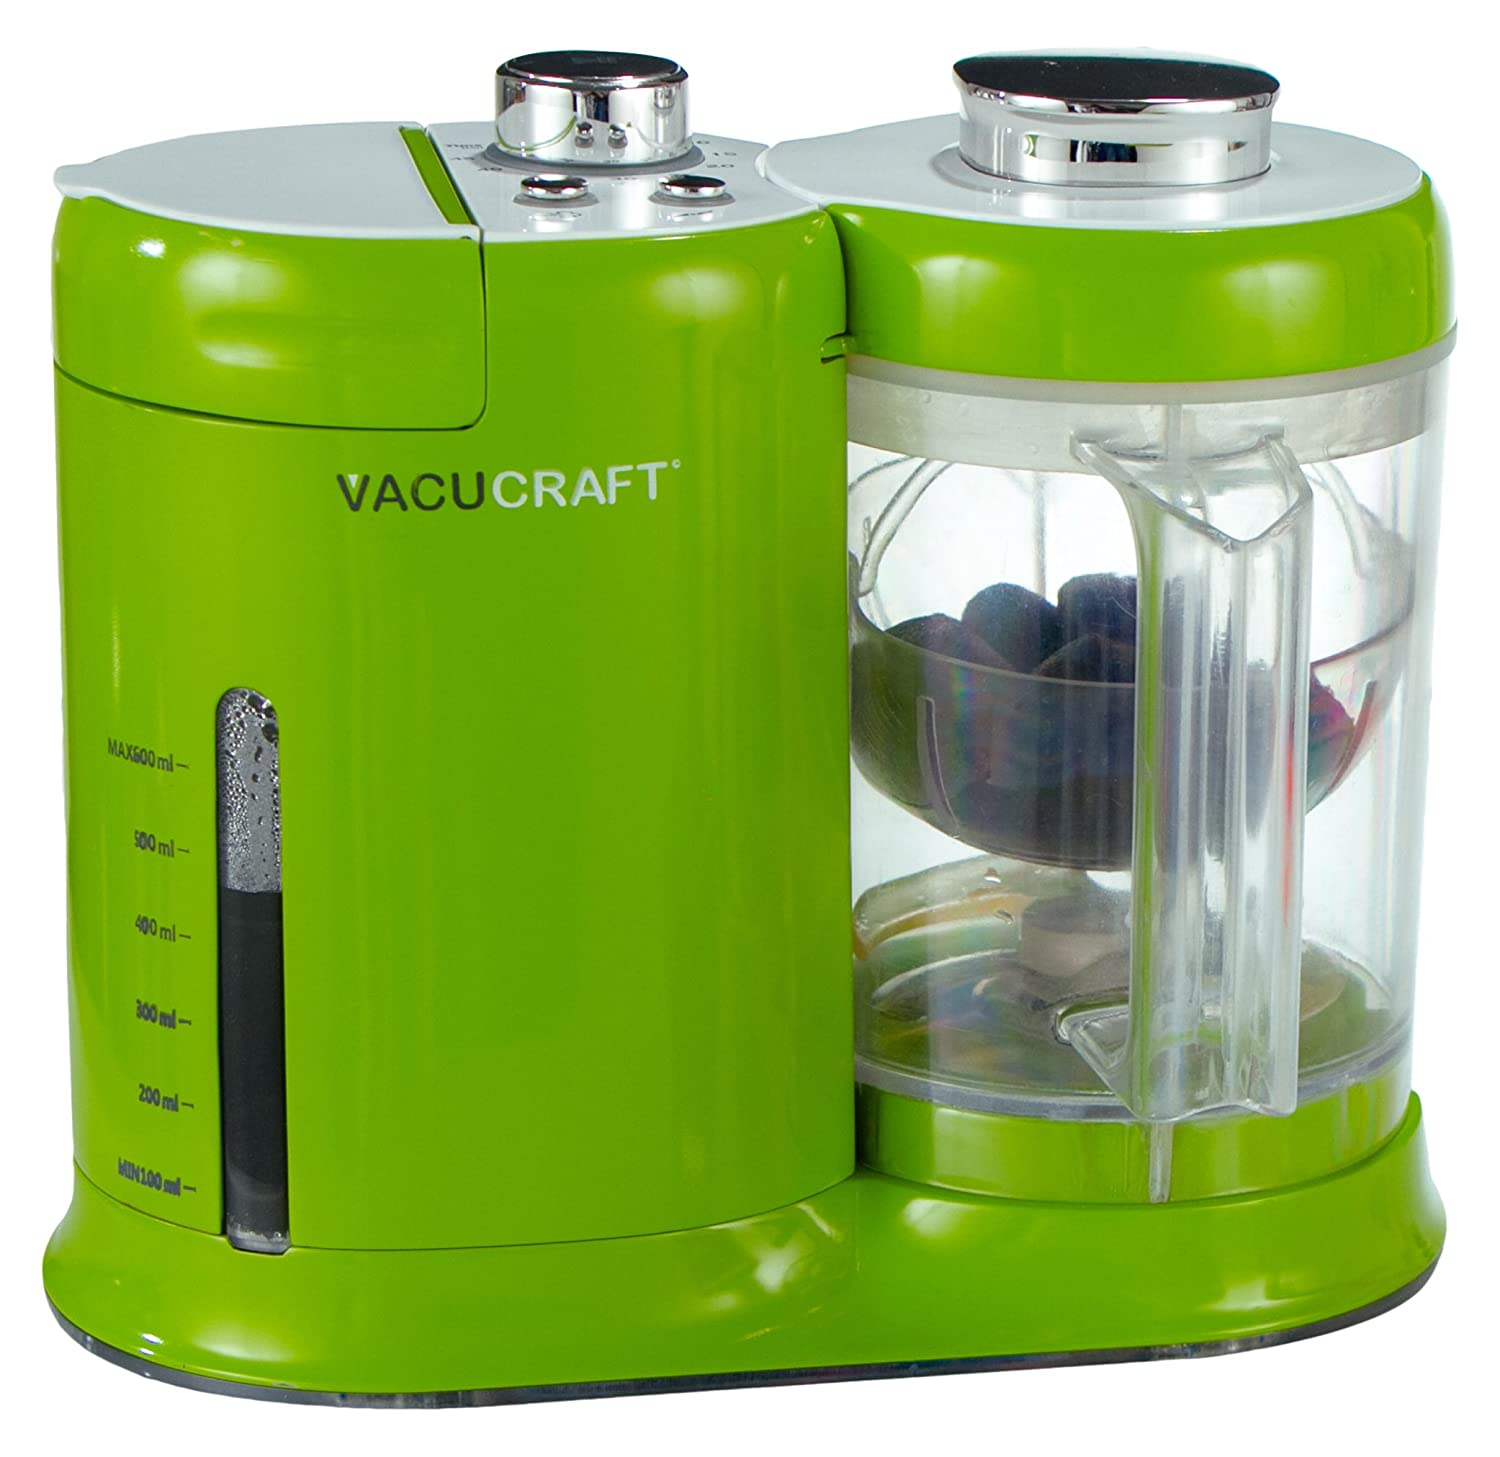 Vacucraft 4-in-1 Baby Food Maker, Food Processor to Steam, Puree, Blend Homemade Food